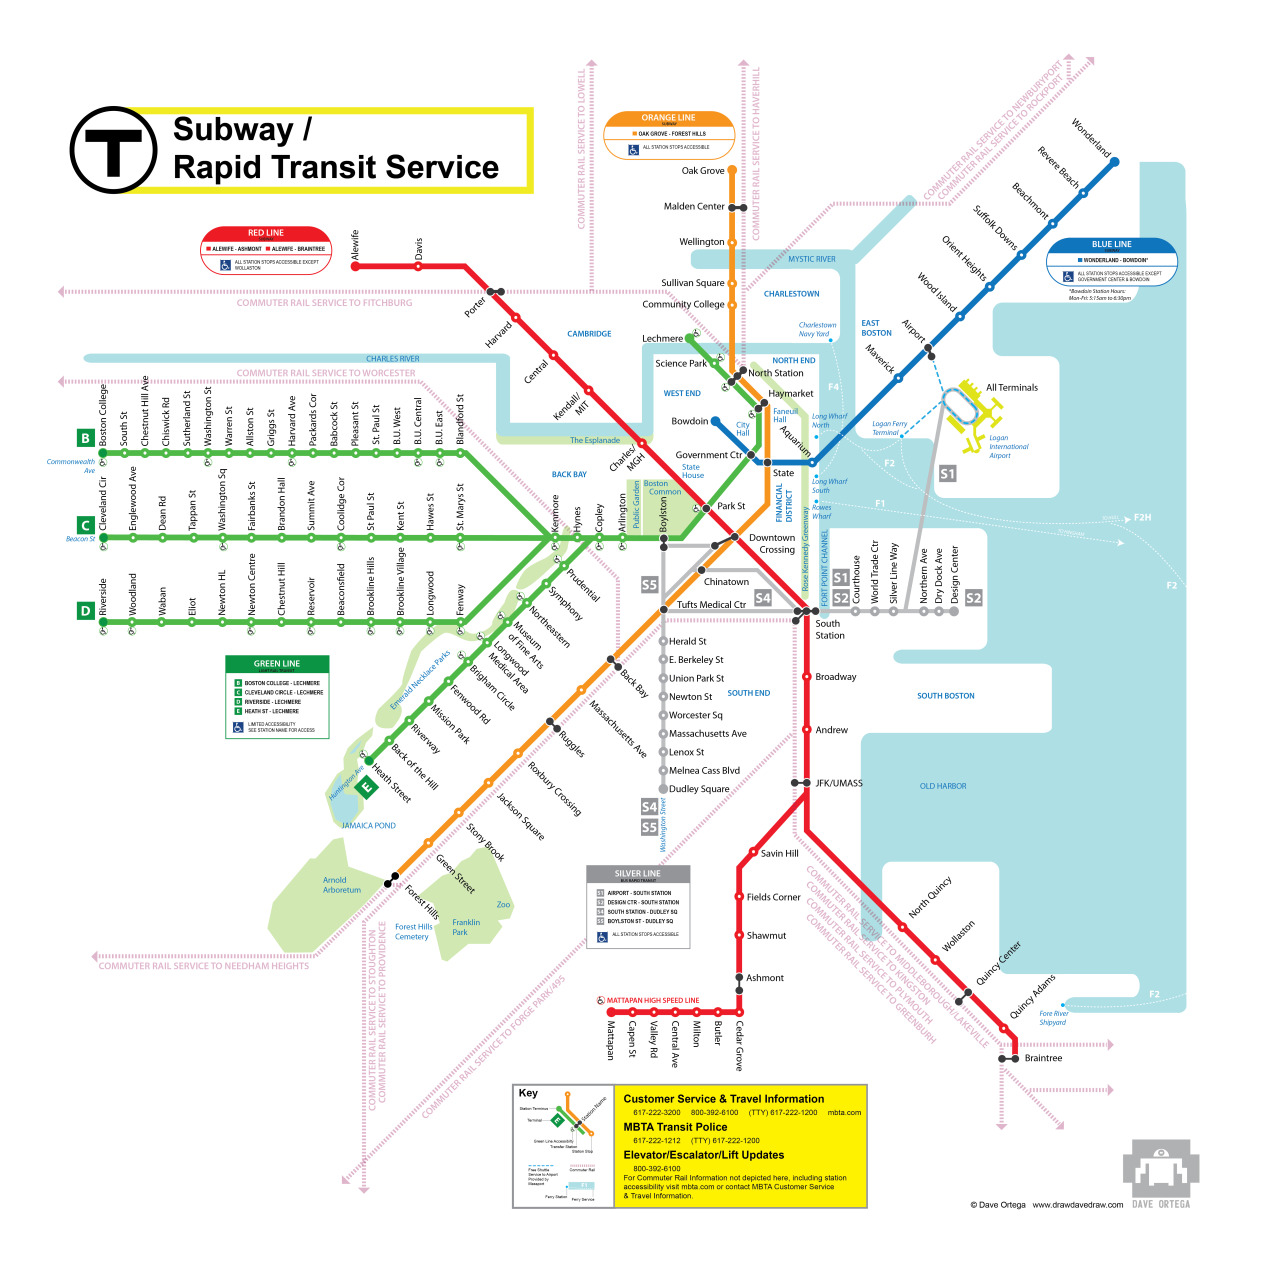 "Non-Entry for the MBTA ""New Perspectives"" Map Challenge I love the idea of re-designing Boston's clunky quasi-decipherable Rapid Transit Map. When I heard that the T was putting together a challenge to re-design the map I seized the opportunity. My enthusiasm cooled once I read the fine-print, but more on that later. I spent the weekend tweaking Bezier curves and aligning dots (so many damn dots), using references like Google maps and subway maps from around the world and came up with this.  Notably absent from the current map is any green space or any of evidence that humans live and work here. Olmsted's parks have the decidedly un-manly name of ""The Emerald Necklace"" which I why I suspect they are absent from the current map. The parks really are a treasure though, and some believe that Franklin Park is Olmsted's masterpiece trumping his more famous Central Park in New York. ( I confess that I have never been there, though I try to ride my bike to the Arboretum every summer). I did my best to tweak the parks' geography to the rigidity of the map, as well as keeping them to scale with the Common and Rose Kennedy Greenway. I named relevant waterways and some government buildings and landmarks. The choice not to overdo it with too many of them is a conscious one. The downtown region where all the lines meet is busy enough already that I simply could not include certain important landmarks. Also, station names that match locations like ""Museum of Fine Arts"" and ""Aquarium"" already do the job.  The handicap accessibility symbol is necessary but also robs any map of rhythm and intent. My work-around was to create descriptive keys for each major lines listing the sub-lines and their teminuses (termini?) with a statement identifying stations that do not have accessibility. The Red Line only has one non-accessible station, the Blue Line -two. The Silver and Orange Lines have access to all of their stops. I feel this solution is an aesthetically stronger choice than to have the symbol at every accessible stop.  The Green Line, however, requires such identification because the inaccessible stops outnumber the accessible ones. I'm not sure how ADA-compliant my idea is in the real world. Also, naming all of the stops on the Green Line became important. Easy enough to do with the C, D, and (especially) the E lines. The B-Line with its super long names and 19 18(!) stops proved a challenge. I'm guilty here of omission and abbreviation (The ""Griggs St/Long Ave"" stop is now just ""Griggs St"") but -hey- the T really should shorten those names. While they're at it, they should eliminate some stops if they can.I also took liberties with the names of the Silver Line, um, lines. ""S1"" simply fits better on a map than ""SL1"". Personally, I think it looks better too and is potentially less confusing for the commuter. So there it is… I would say that its kind of a love letter to this place that I have lived in for 12 years, but that's over-stating it. It was just wicked fun.Creating something and then surrendering copyright is tantamount to Work for Hire. With this 'challenge' (note, they are shrewdly not calling it a contest), the T wants Work for Hire… for Free.  It's unclear what the incentive is to enter the challenge if there are no prizes and especially if, according to T spokeswoman Kelly Smith:  ""Replacing all of the maps in the MBTA system would represent a significant expense and not one that is being contemplated at this time."" So, from here it seems that the T is claiming copyright on all the entries so when they do re-design the system map, they can pick and choose great ideas from each without compensating anyone for them. Classy! Even the perpetually cash-strapped T can throw a bone to graphic designers that need to put in at least a weekend of work to make something look decent. If they really, really wanted designers to care, they could put some meat on that bone.  I ride the commuter rail 4 days a week… I'll take a yearly pass. I'm not alone in thinking this. In fact, American Institute of Graphic Arts points out that designers should never provide anything of value if they are paid nothing of value. So, T… pay for quality graphic design. Oh, and get rid of  ""forward funding"" to finance yourself. That's just common sense."